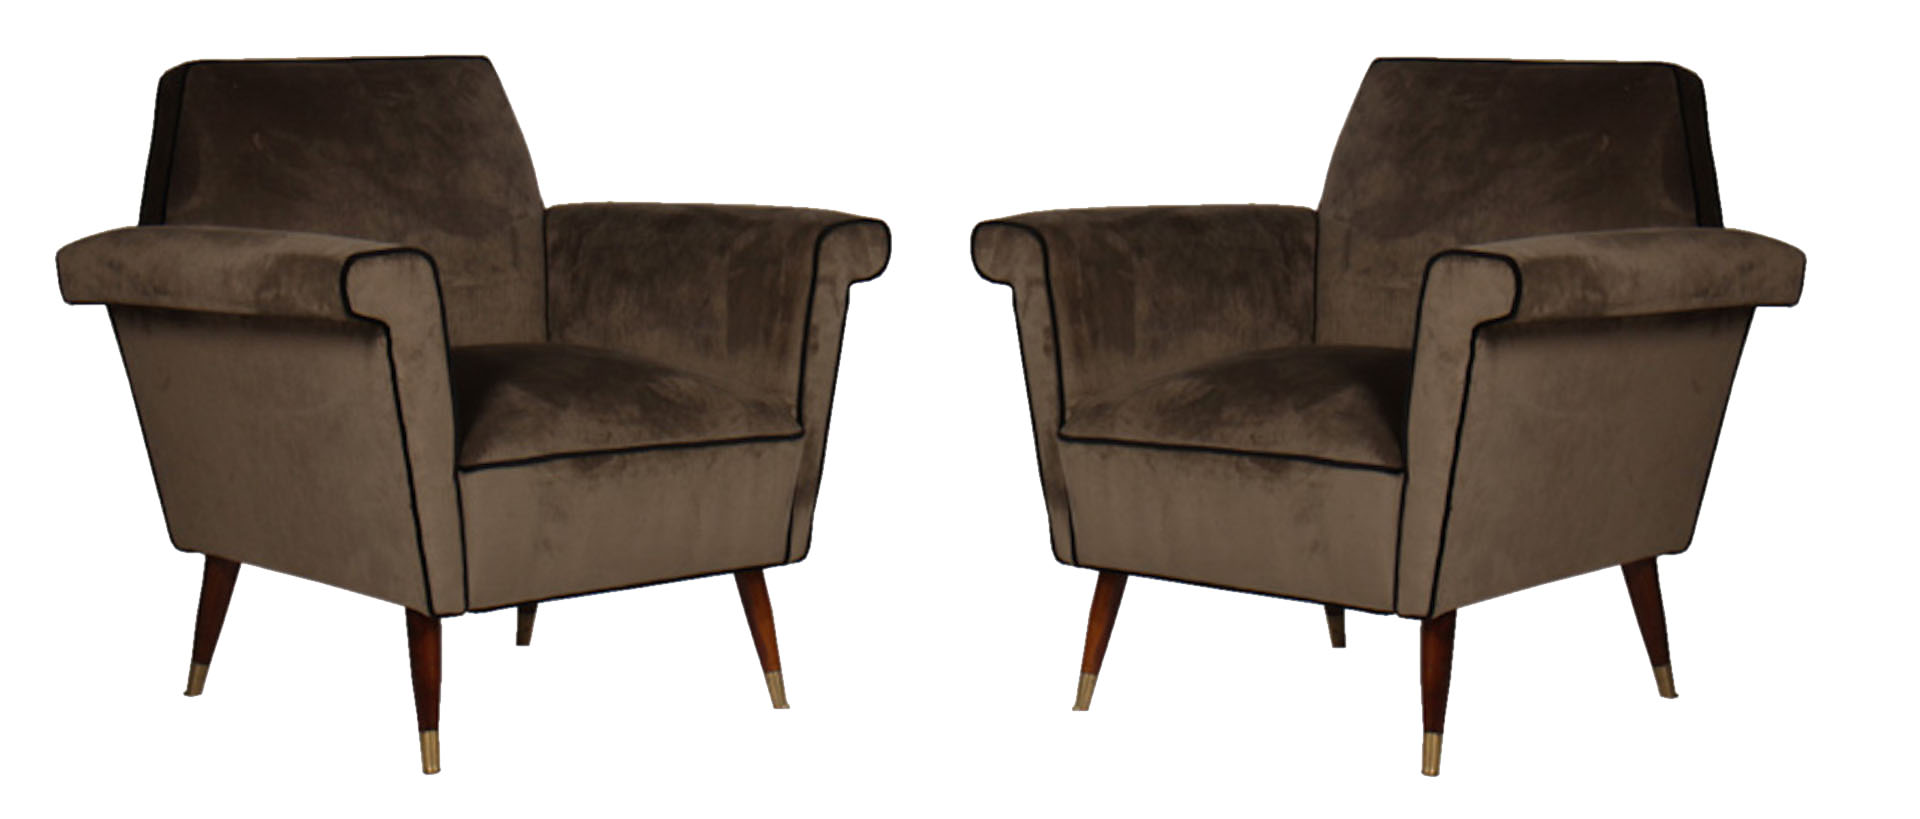 A pair of mid century modern upholstered club chairs 1960 for Mid century modern upholstered chair